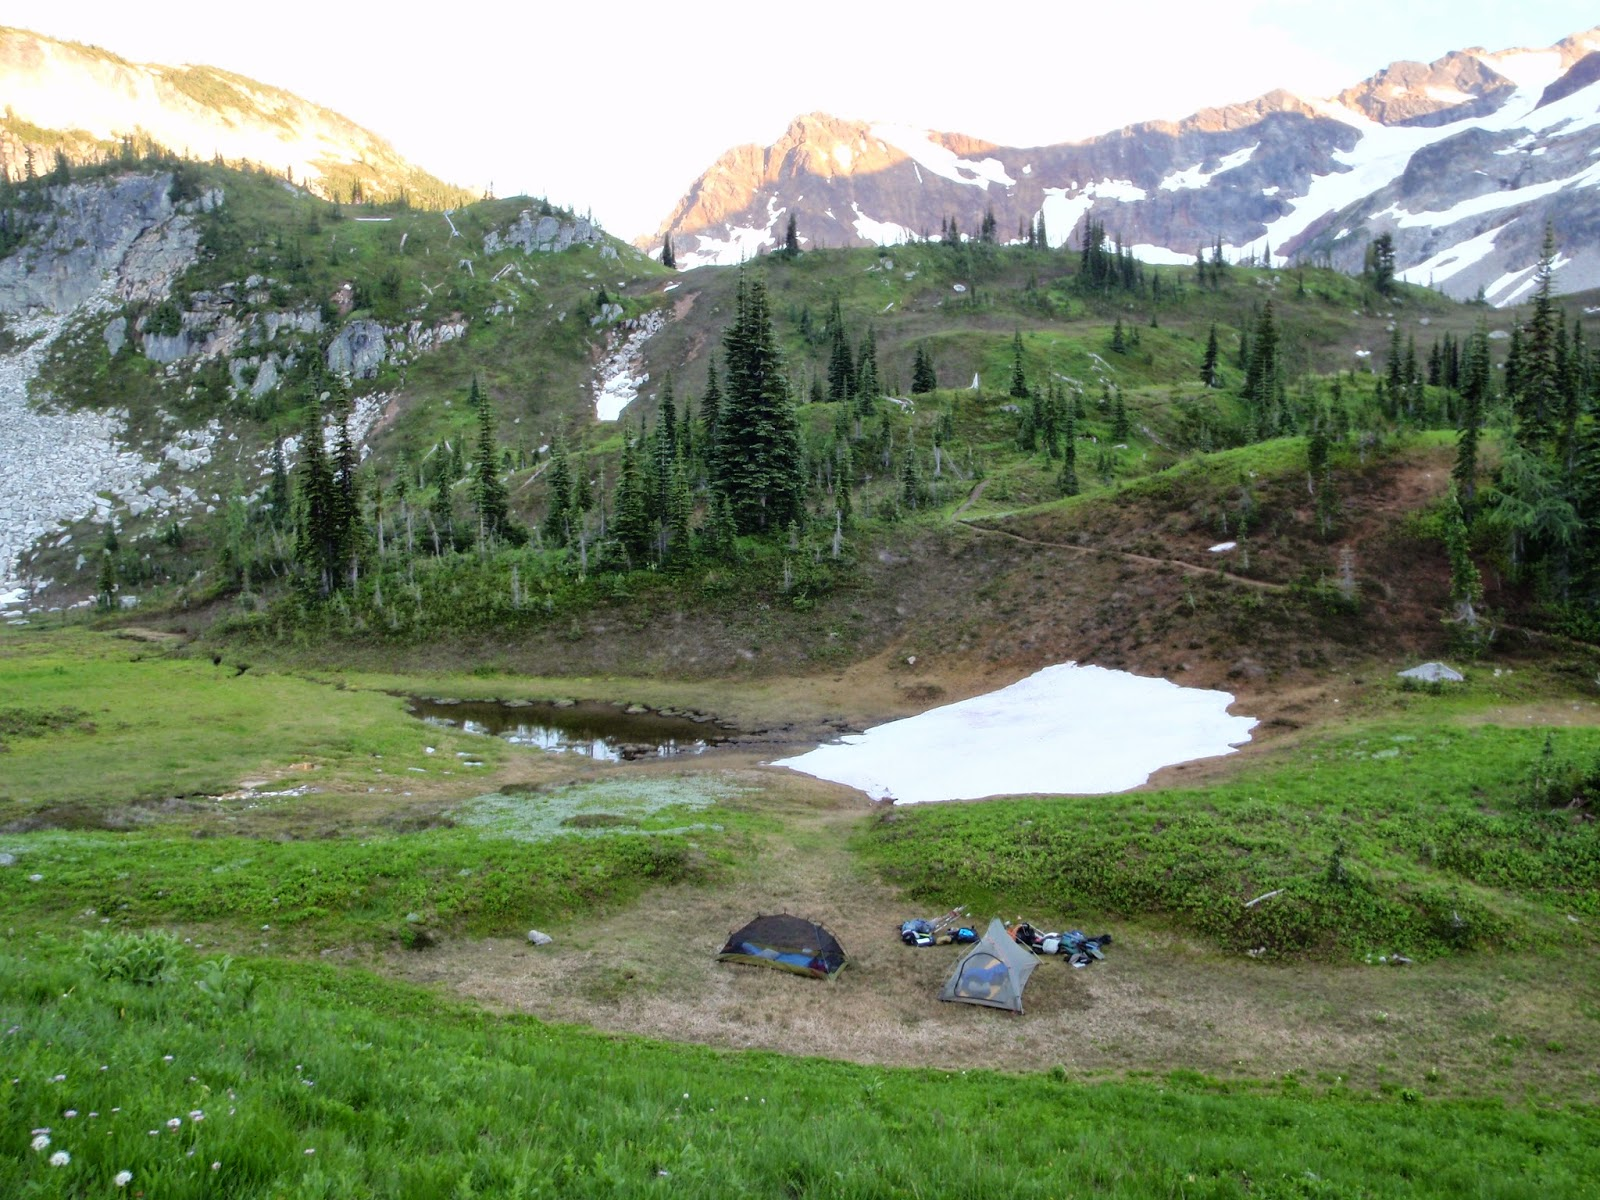 Camp in the Upper Lyman Lakes area @ Glacier Peak Wilderness